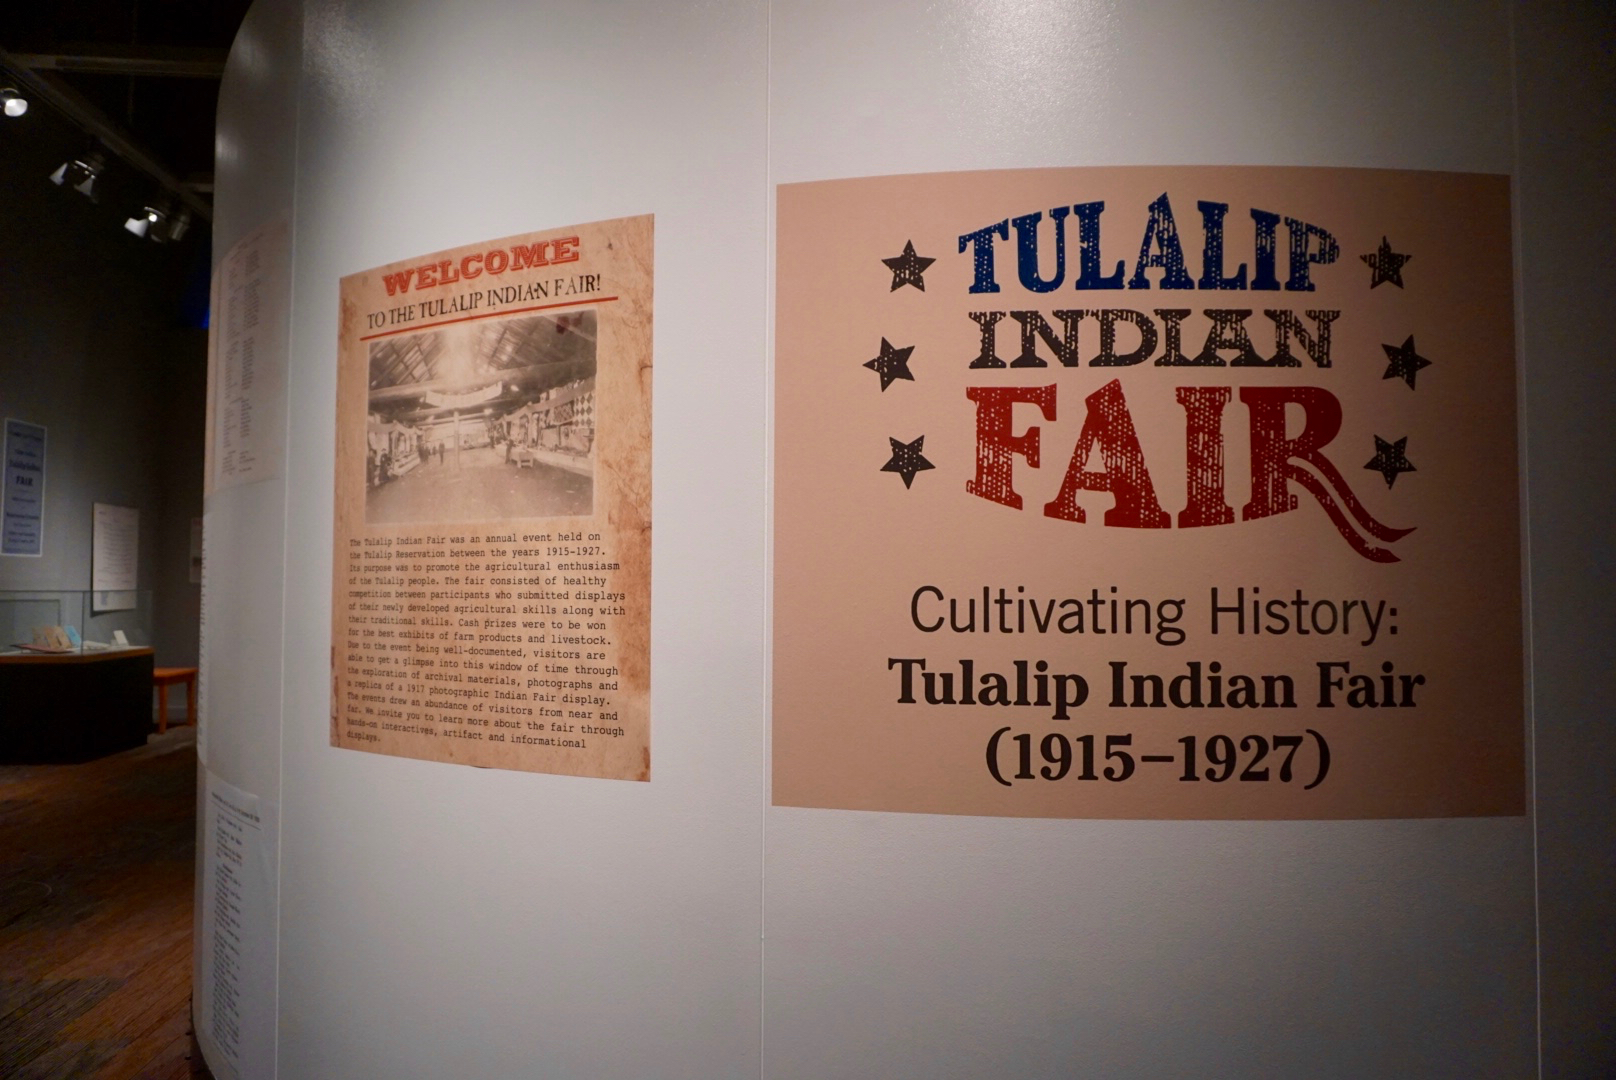 The current temporary exhibit highlights the Tulalip Indian Fair of 1915 - 1927.